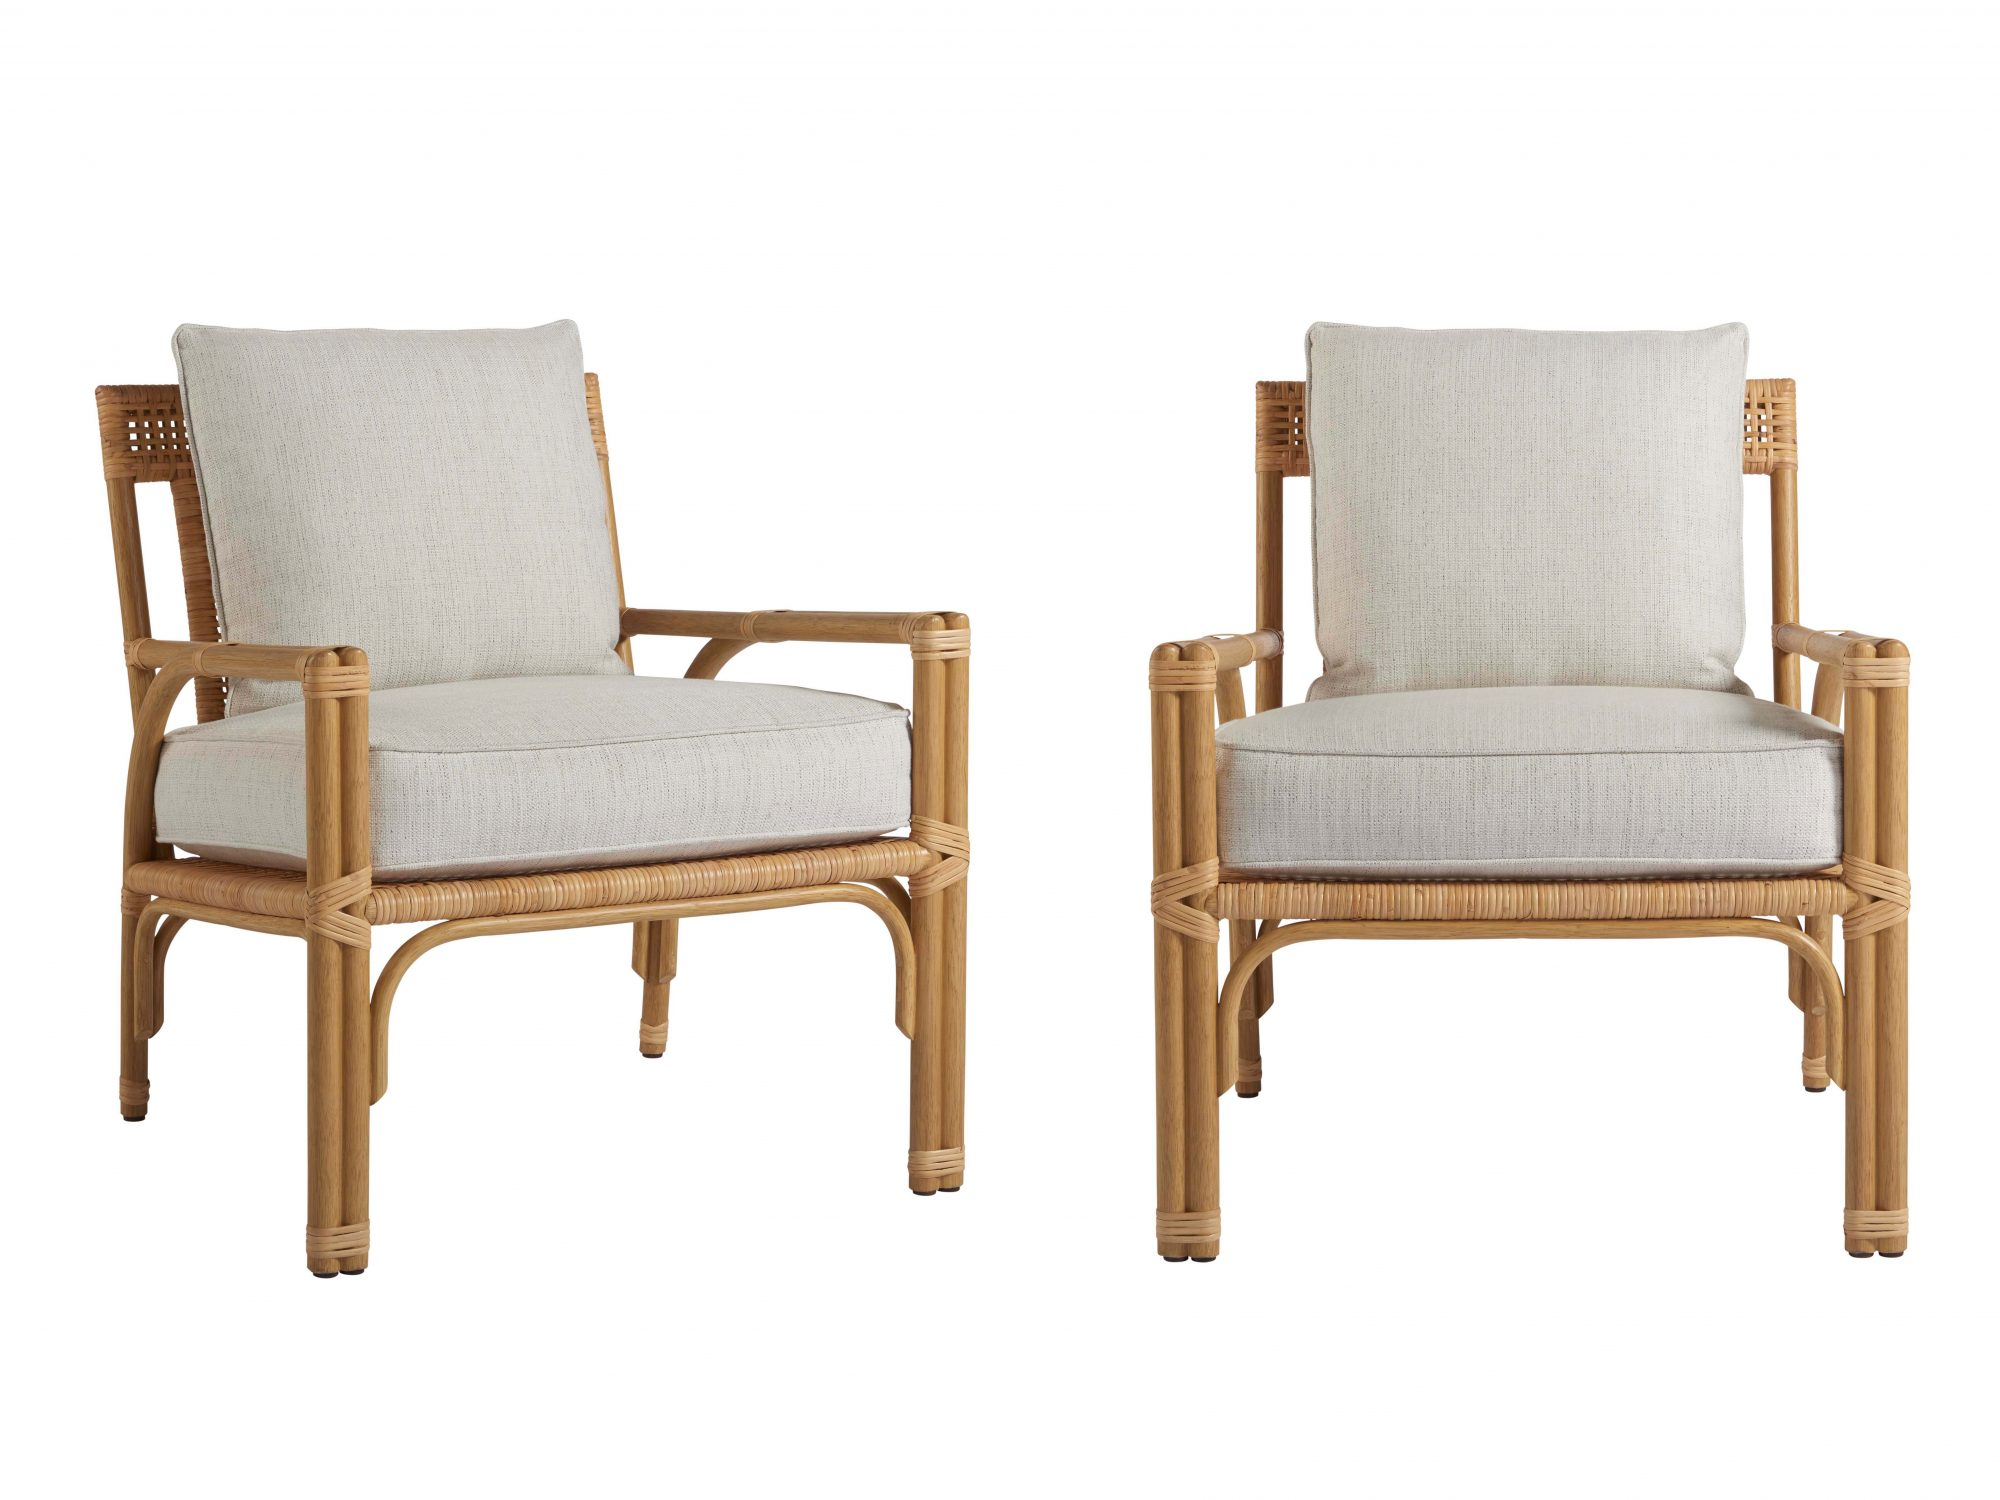 Newport Accent Chair from the Coastal Living Furniture Collection